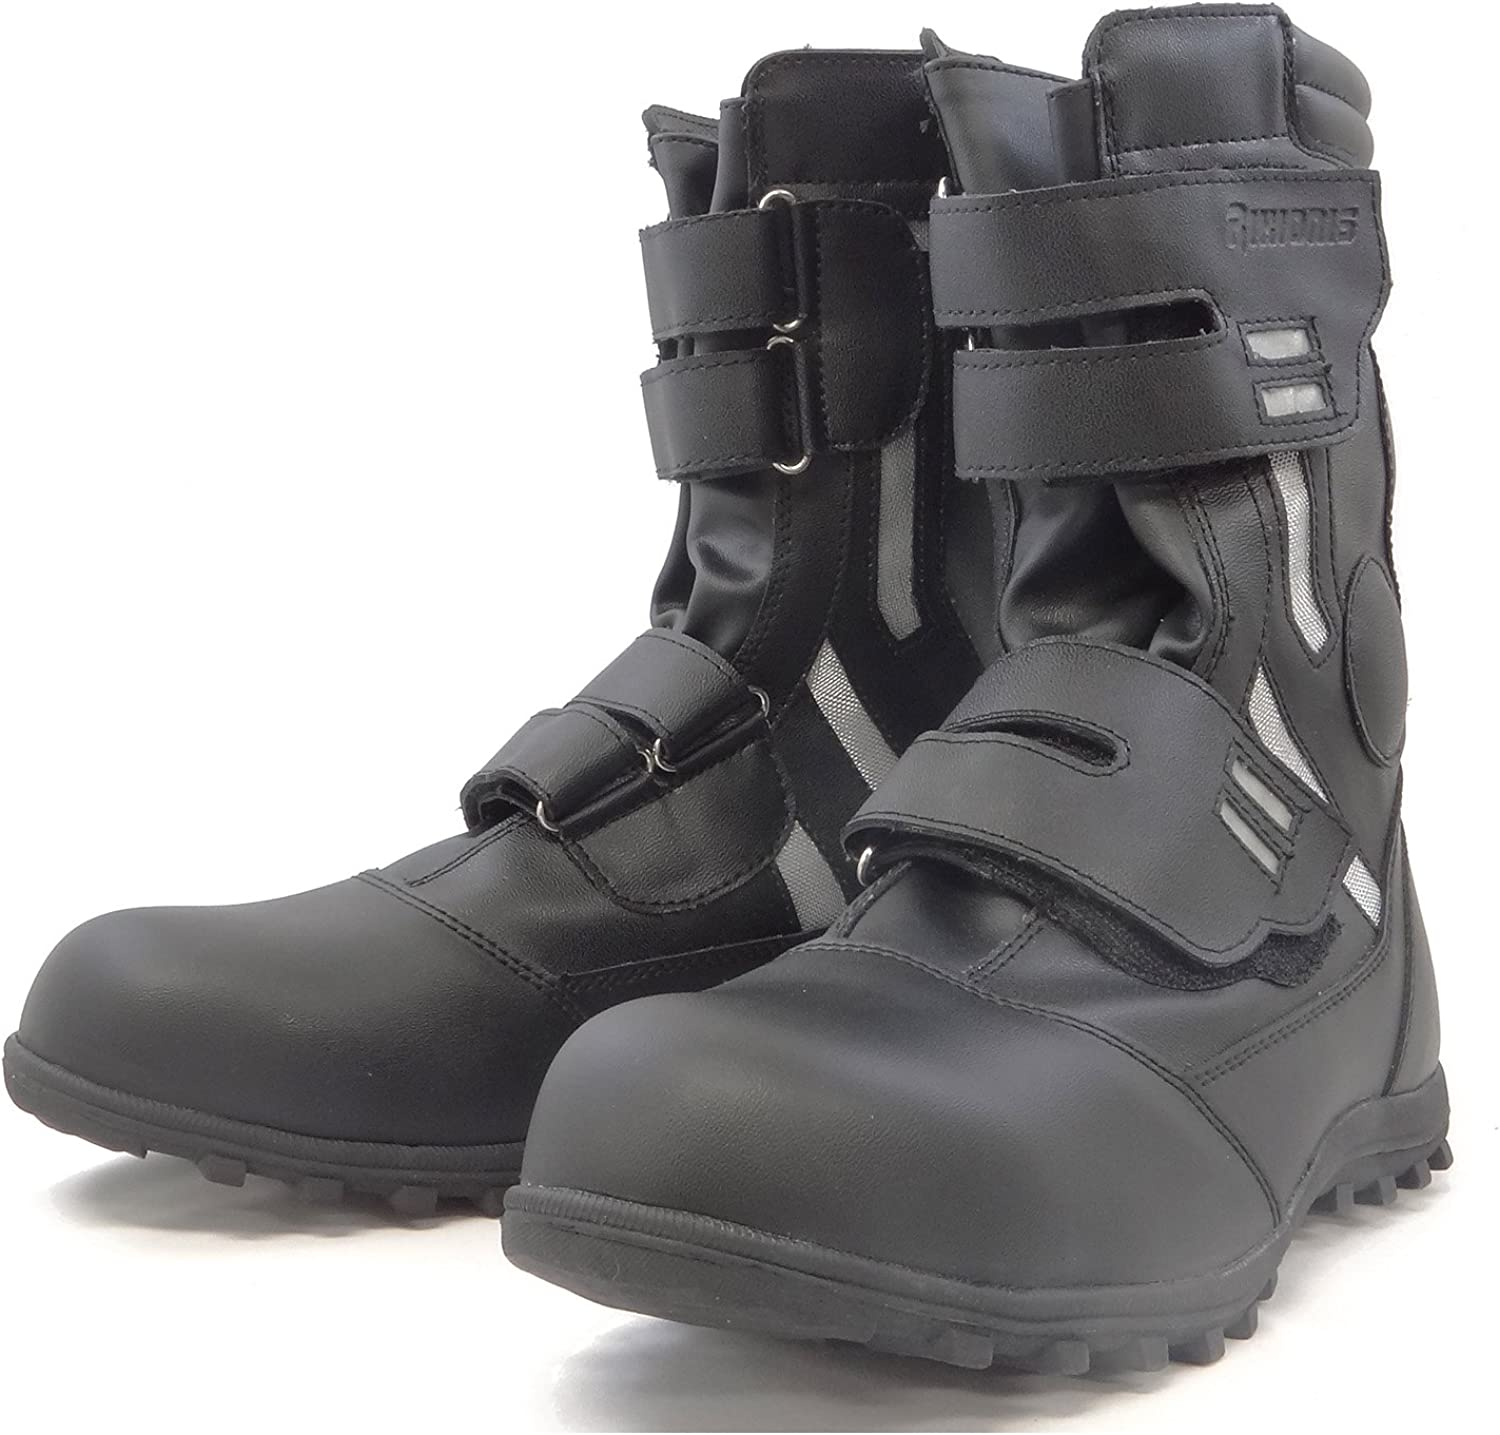 New sales Japanese Protective Cap Working Safety Guards Boots: Free Shipping Cheap Bargain Gift High